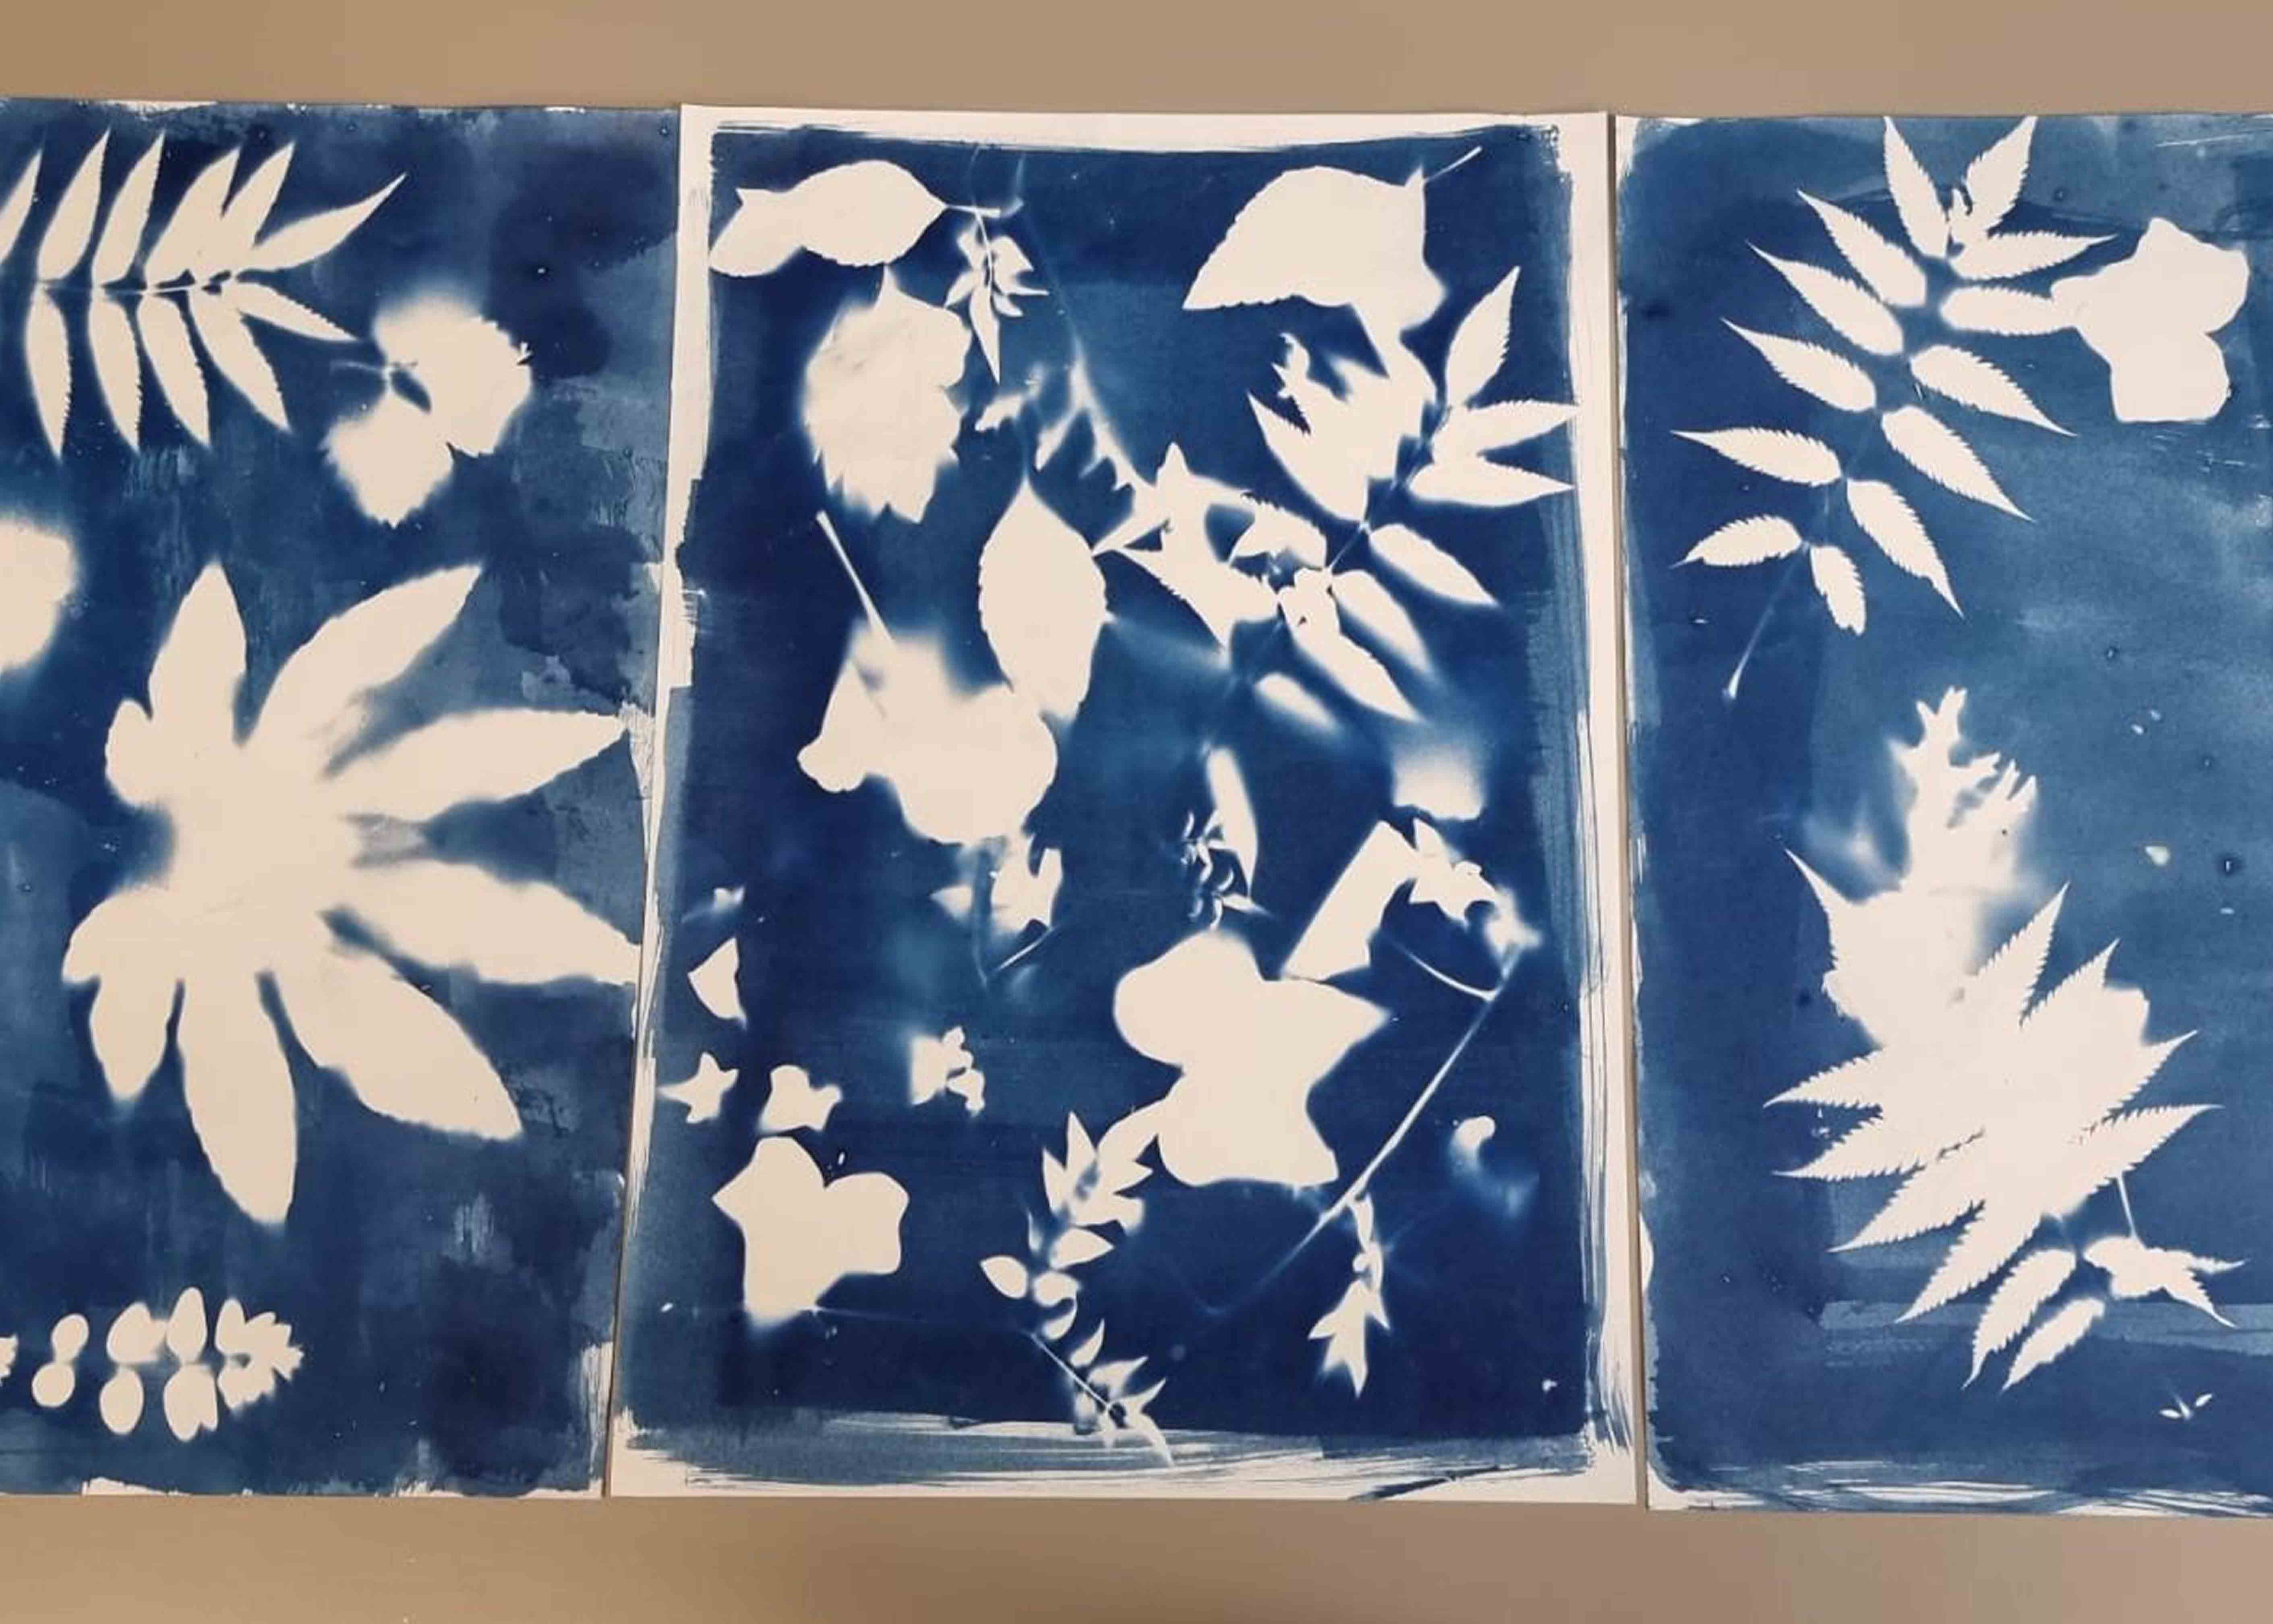 Floral cyanotypes